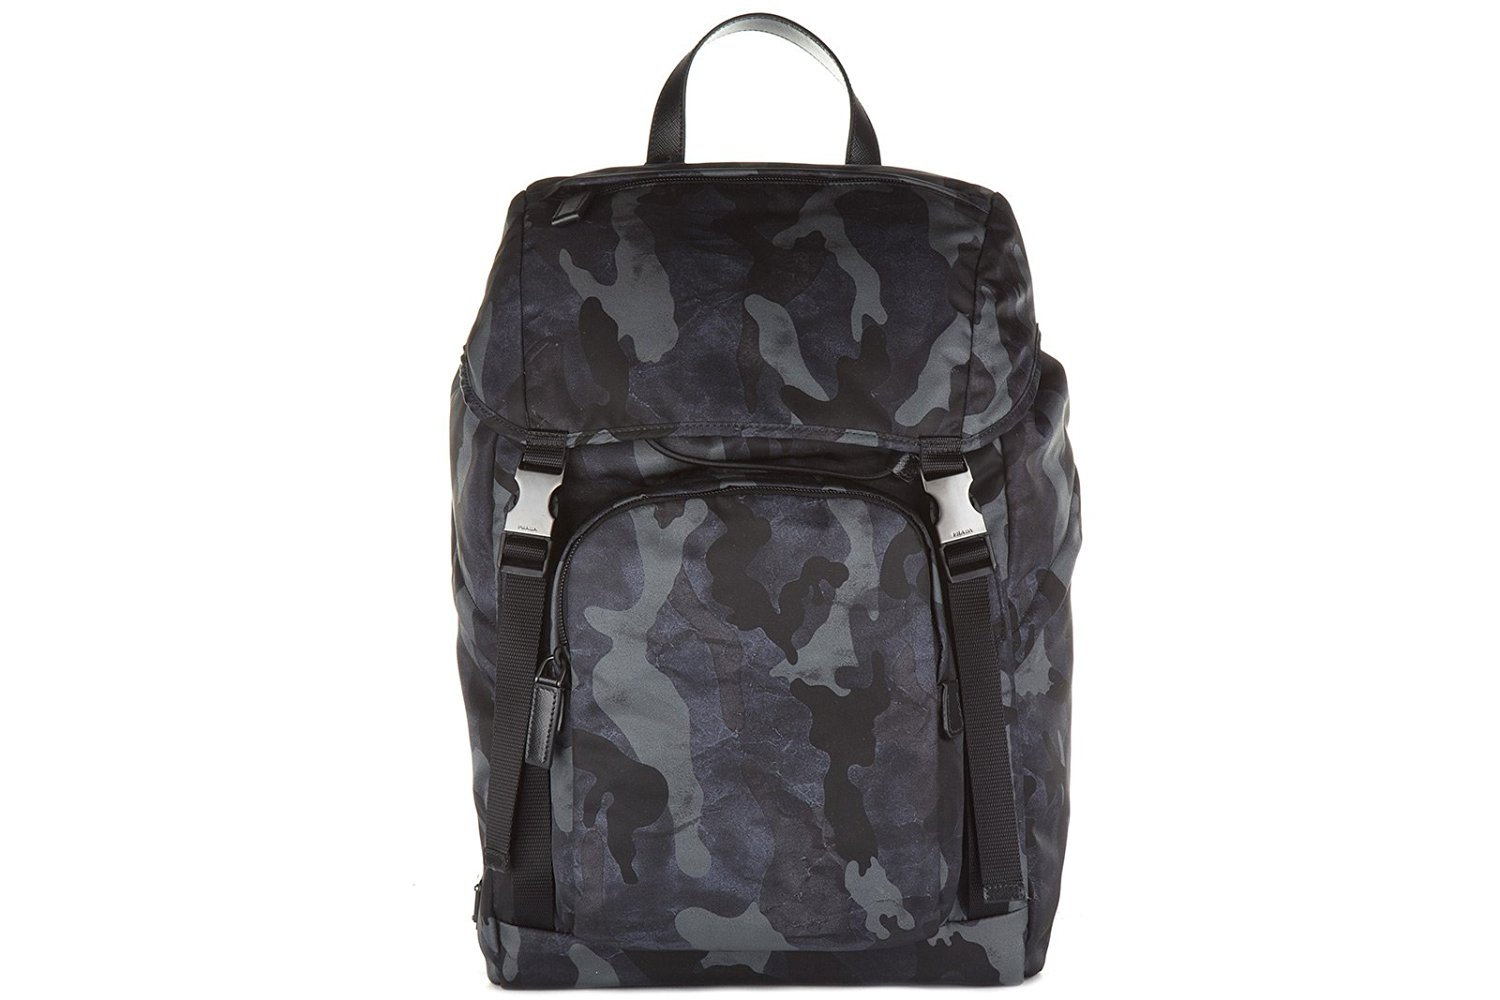 080cf577e9e079 Cheap Prada Camouflage, find Prada Camouflage deals on line at ...